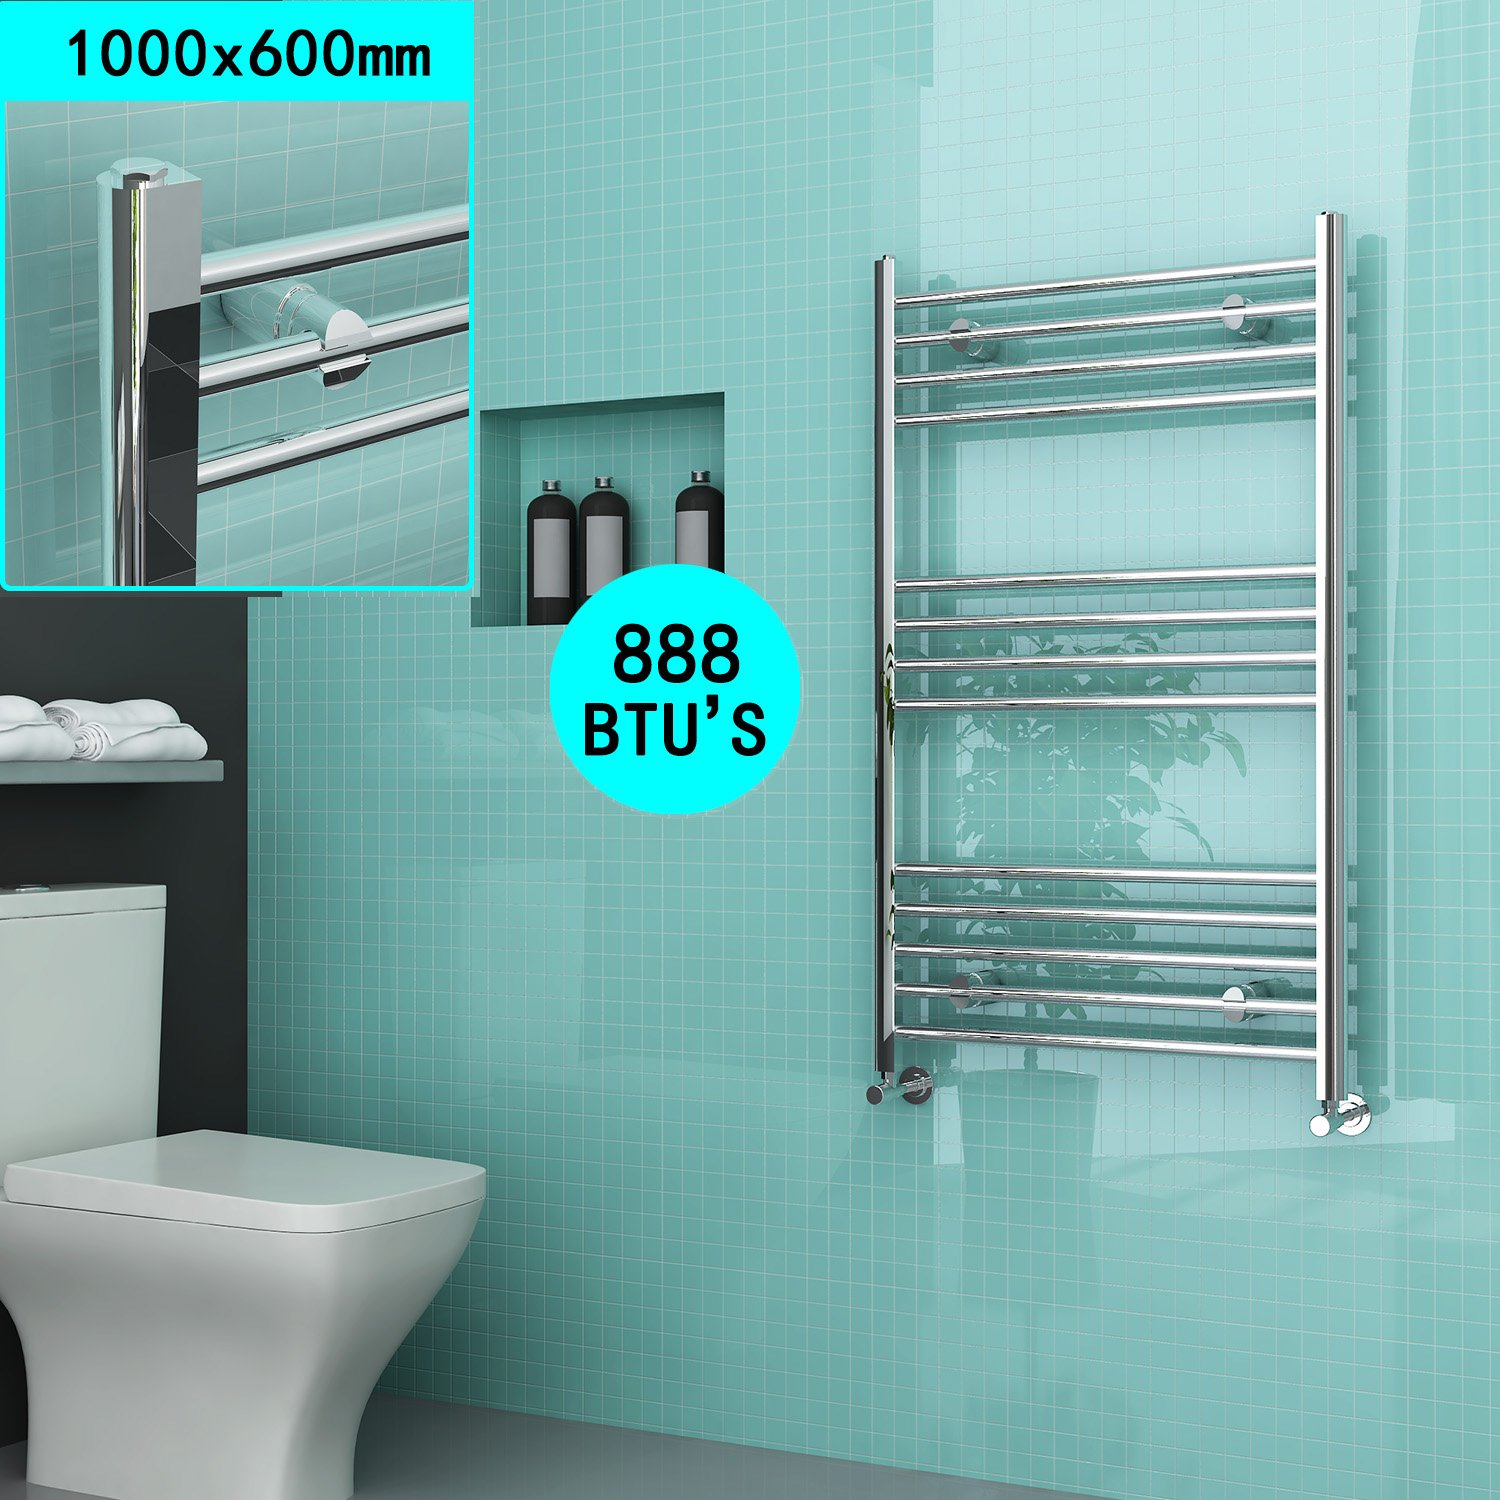 600 x 500 mm Chrome Straight Towel Rail Radiator Bathroom Heated Towel Radiator ELEGANT